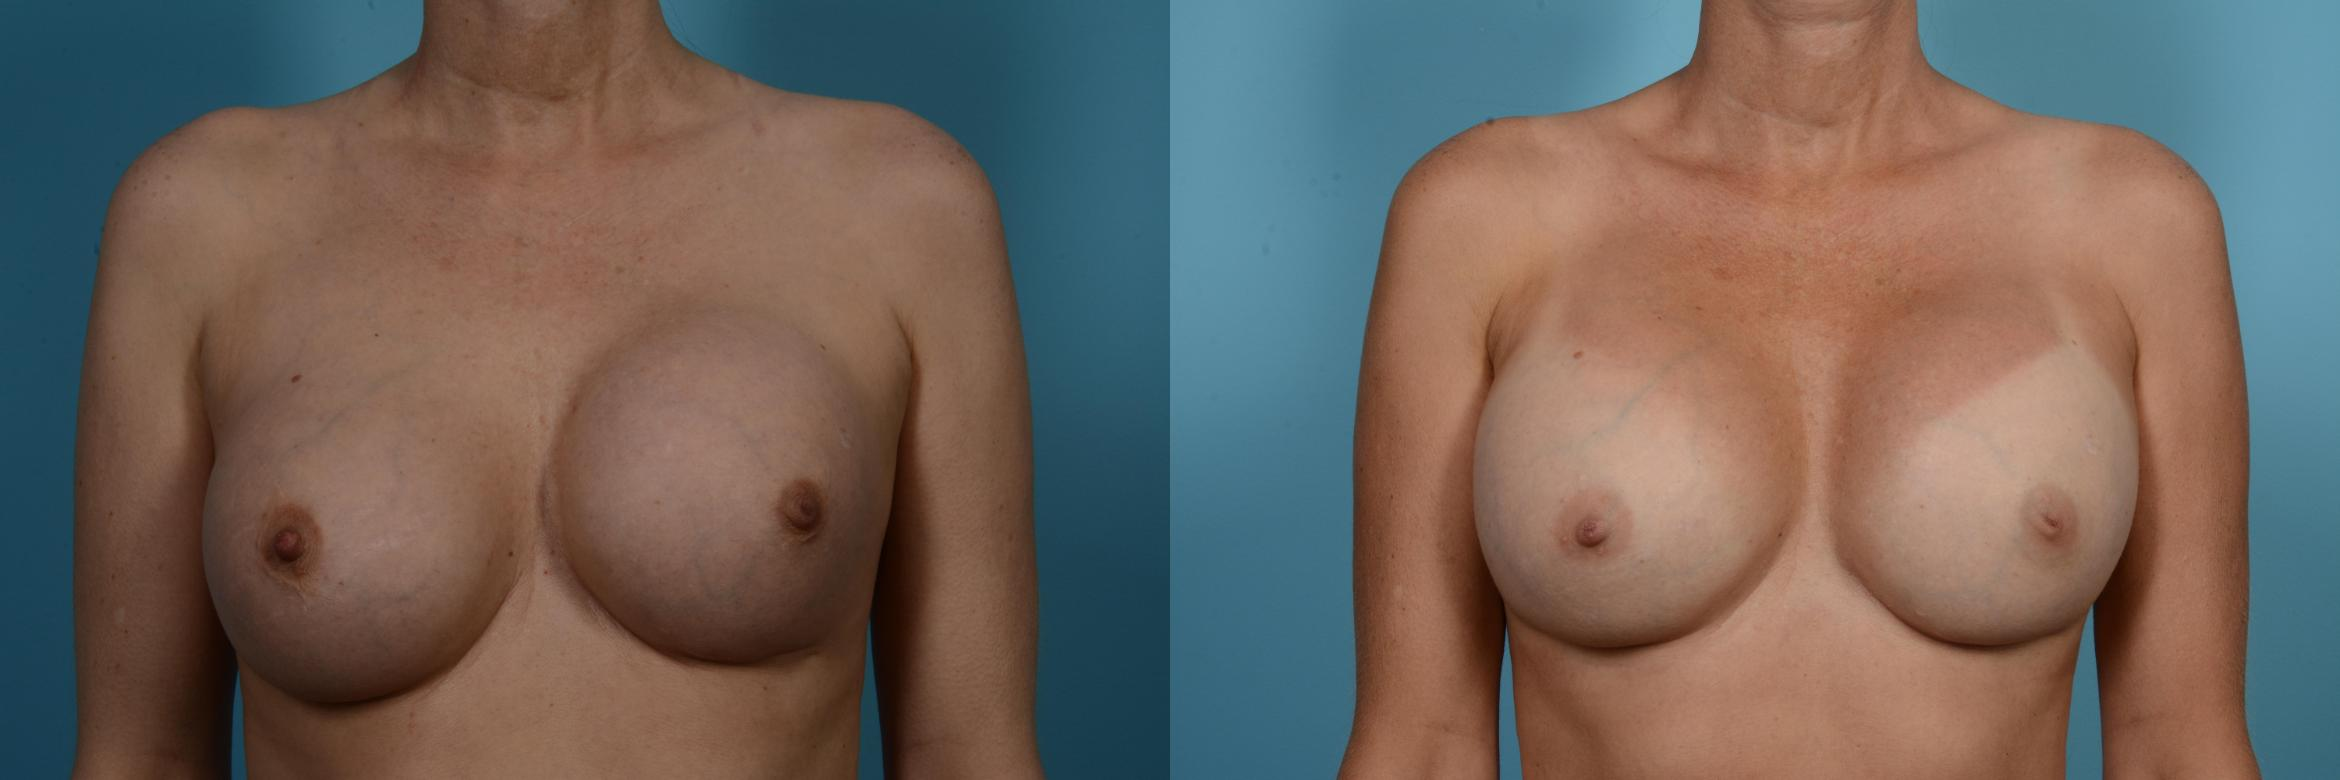 Breast Revision Surgery Case 556 Before & After View #1 | Chicago, IL | TLKM Plastic Surgery